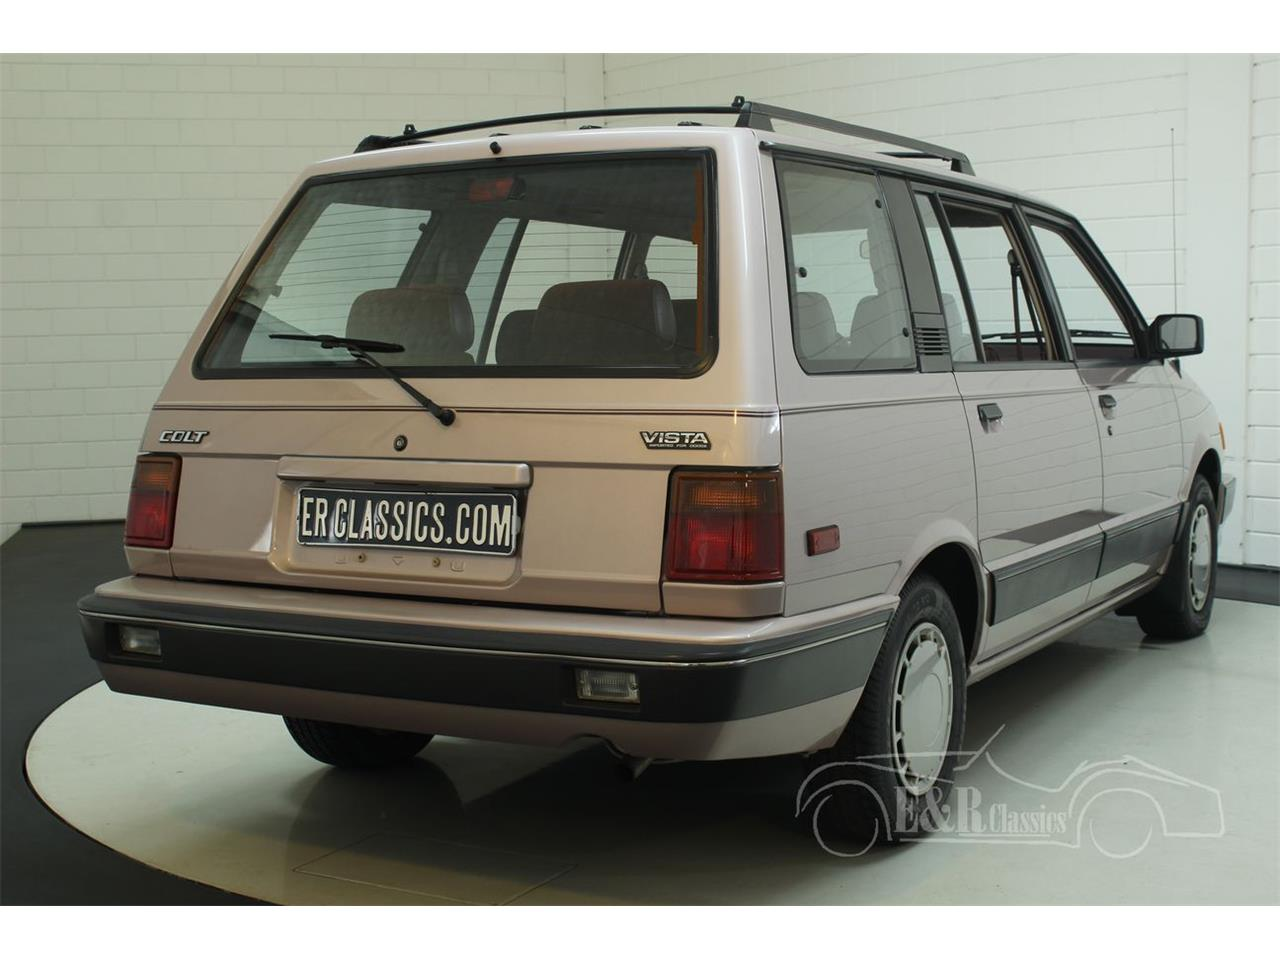 Large Picture of 1987 Dodge Colt located in [nl] Pays-Bas - $16,900.00 - PVV4